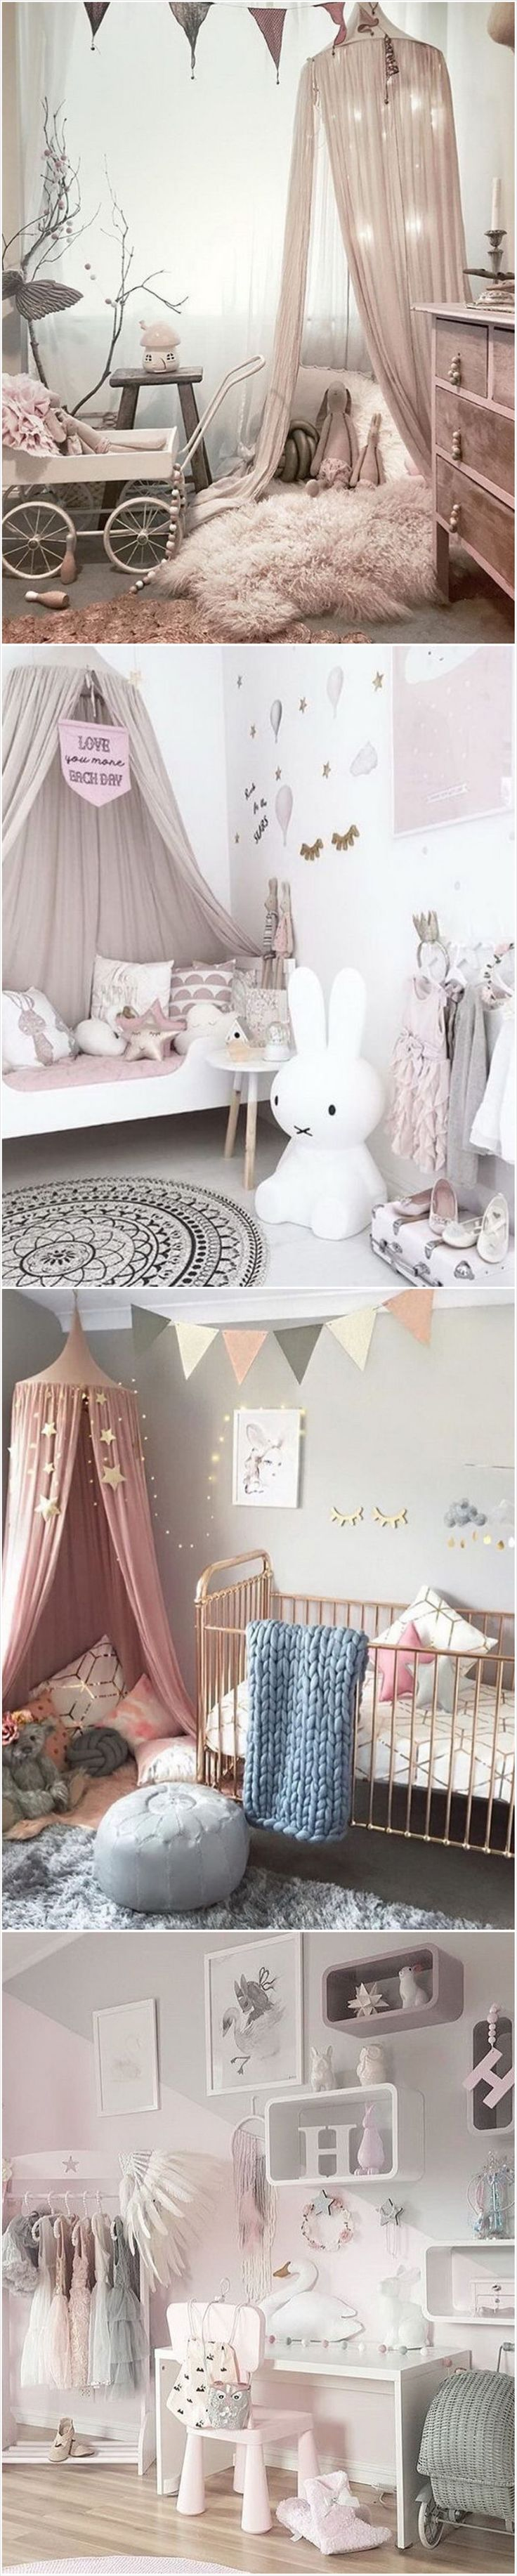 Best 25 Uni nursery ideas ideas on Pinterest